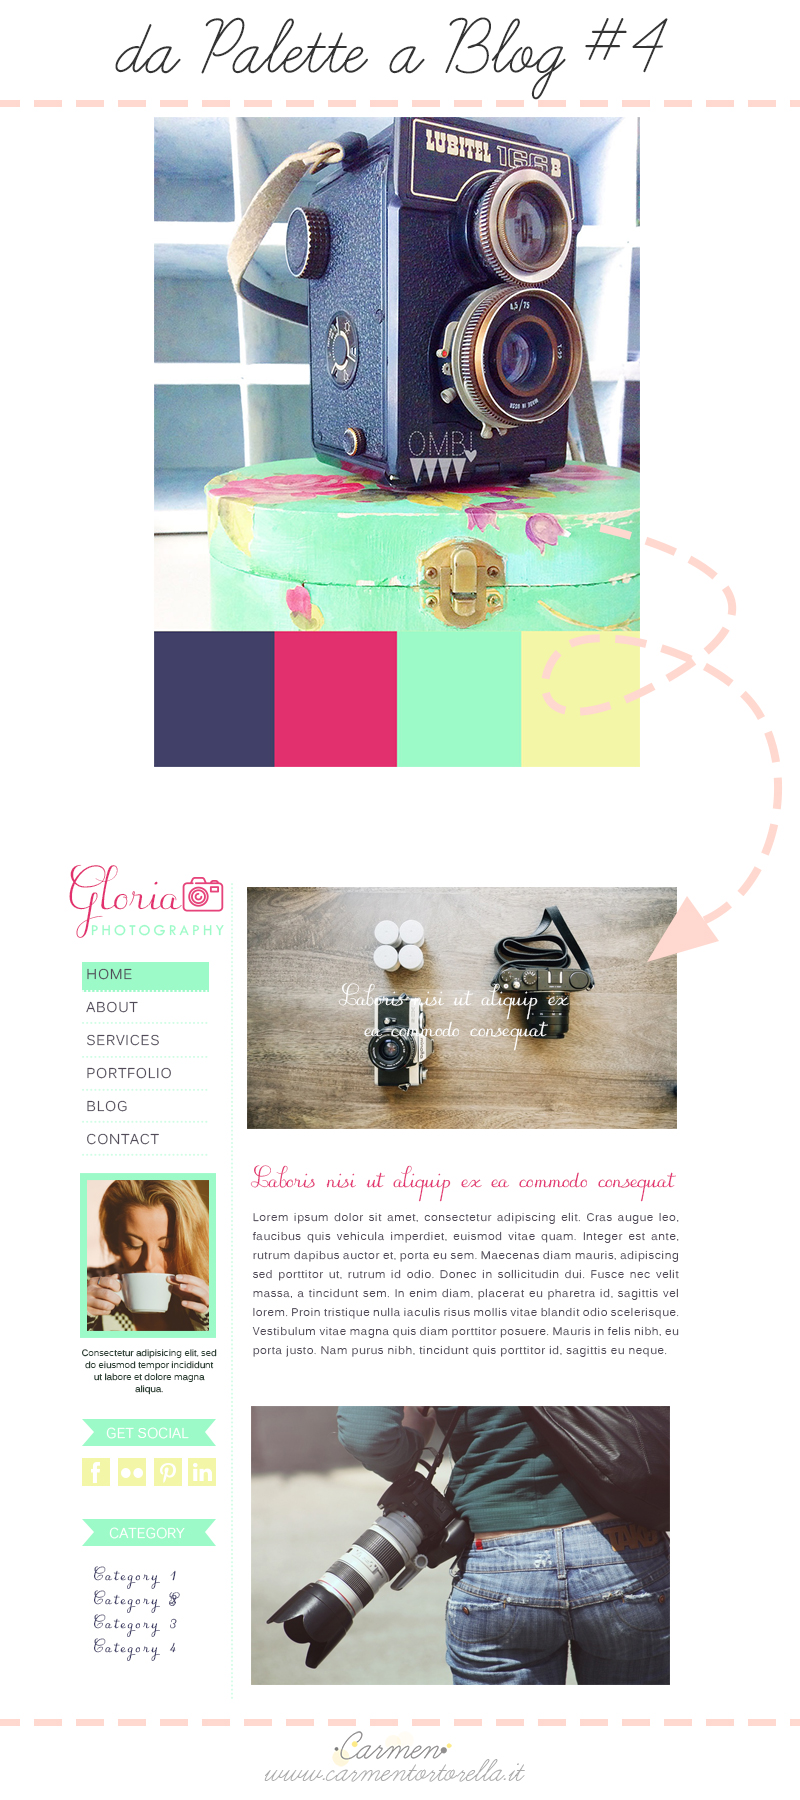 Da Palette a Blog design #4